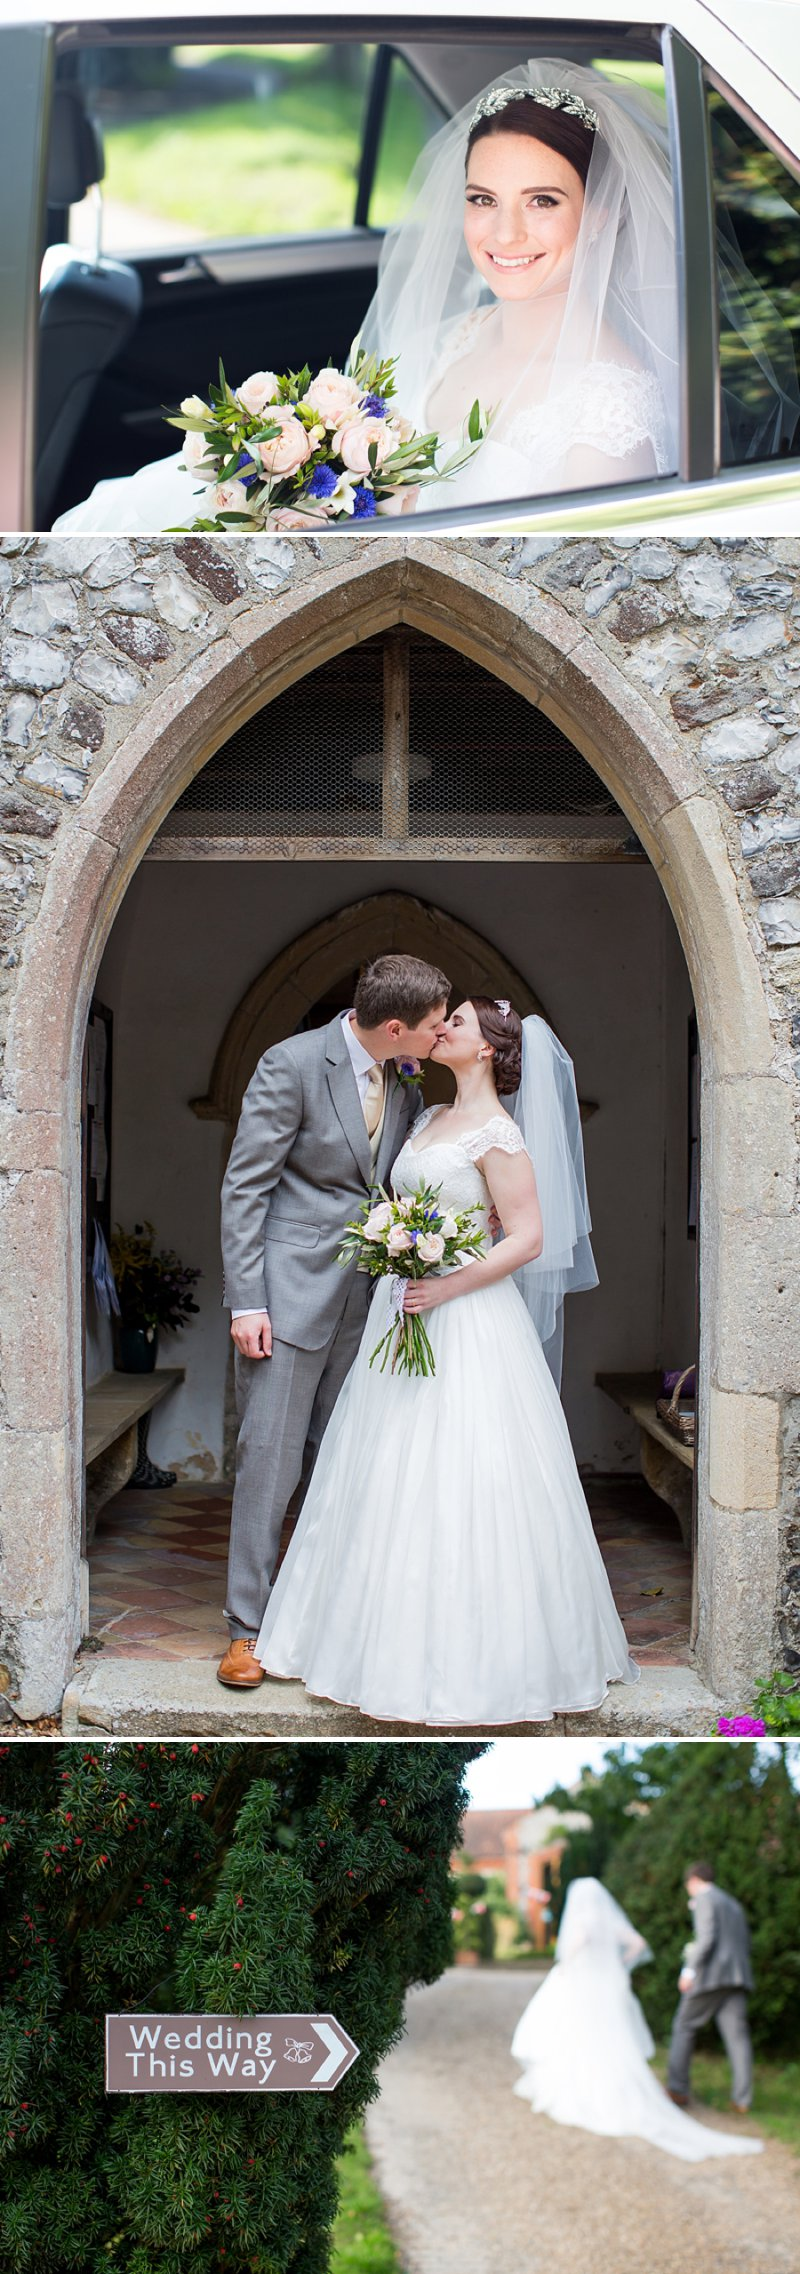 Elegant Wedding At Chaucer Barn Norfolk With Bride In Ivory Dita Gown By Naomi Neoh From The Bespoke Wardrobe With A Stewart Parvin Veil 1